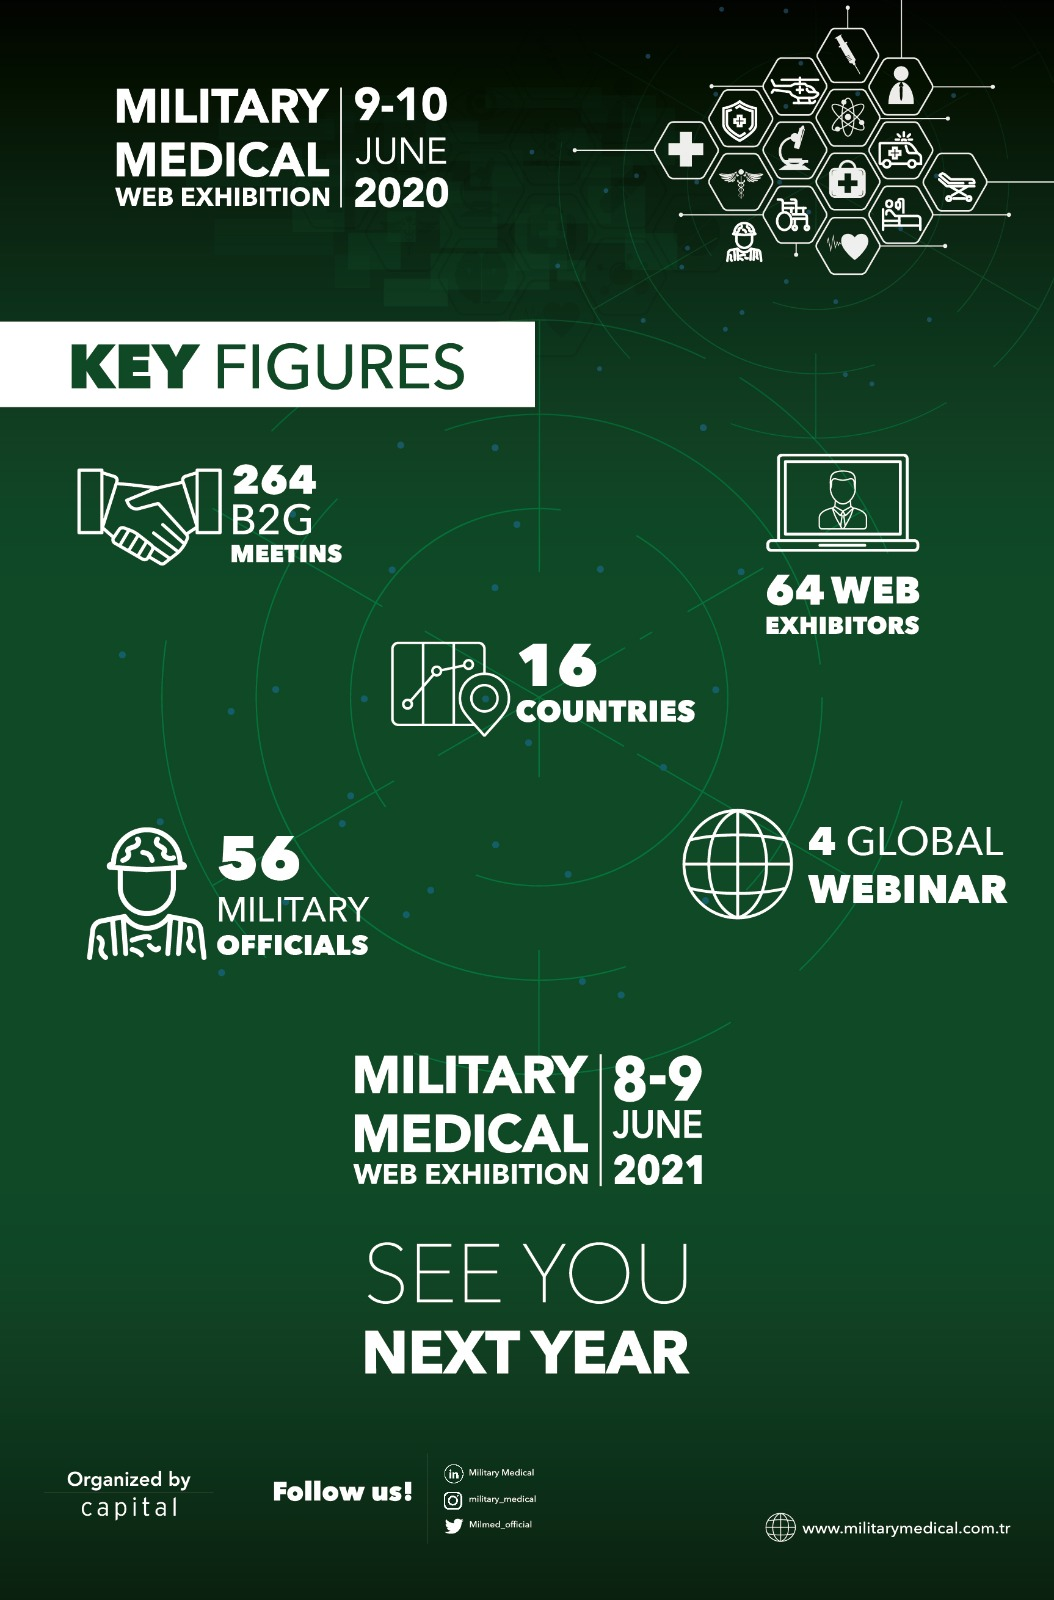 Global Medical Product Manufacturers Convened at Online Military Medical WebEx